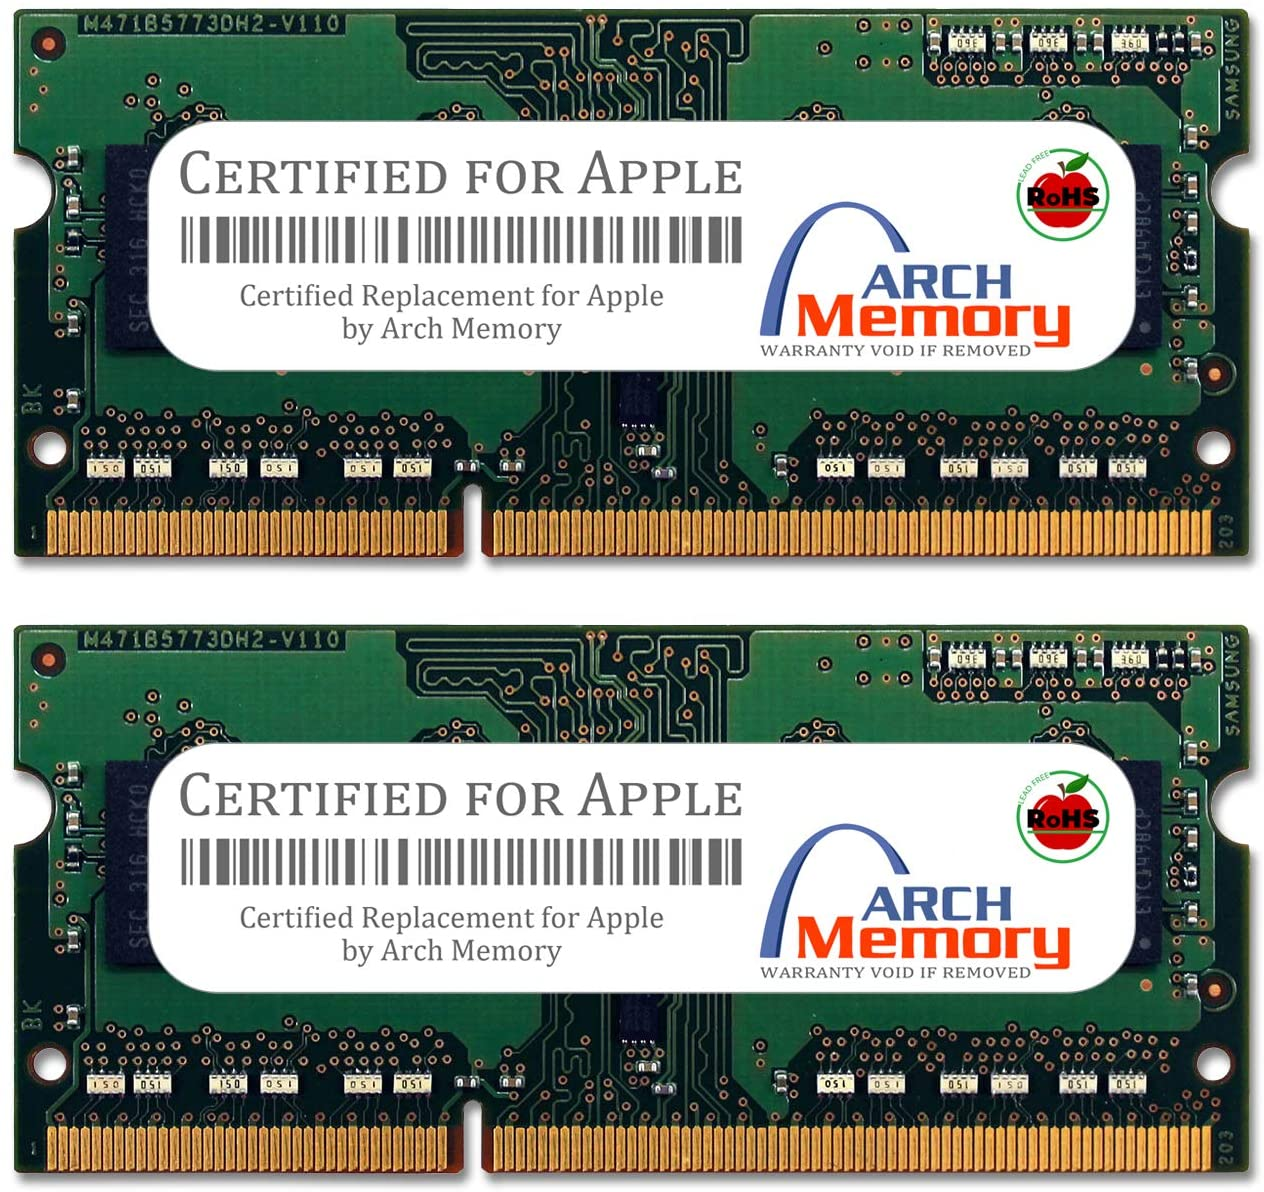 Arch Memory Replacement for Apple 8 GB (2 x 4 GB) 204-Pin DDR3 SodimM RAM for MacBook Pro 13-inch Intel Core i7 2.9 GHz MD102LL/A